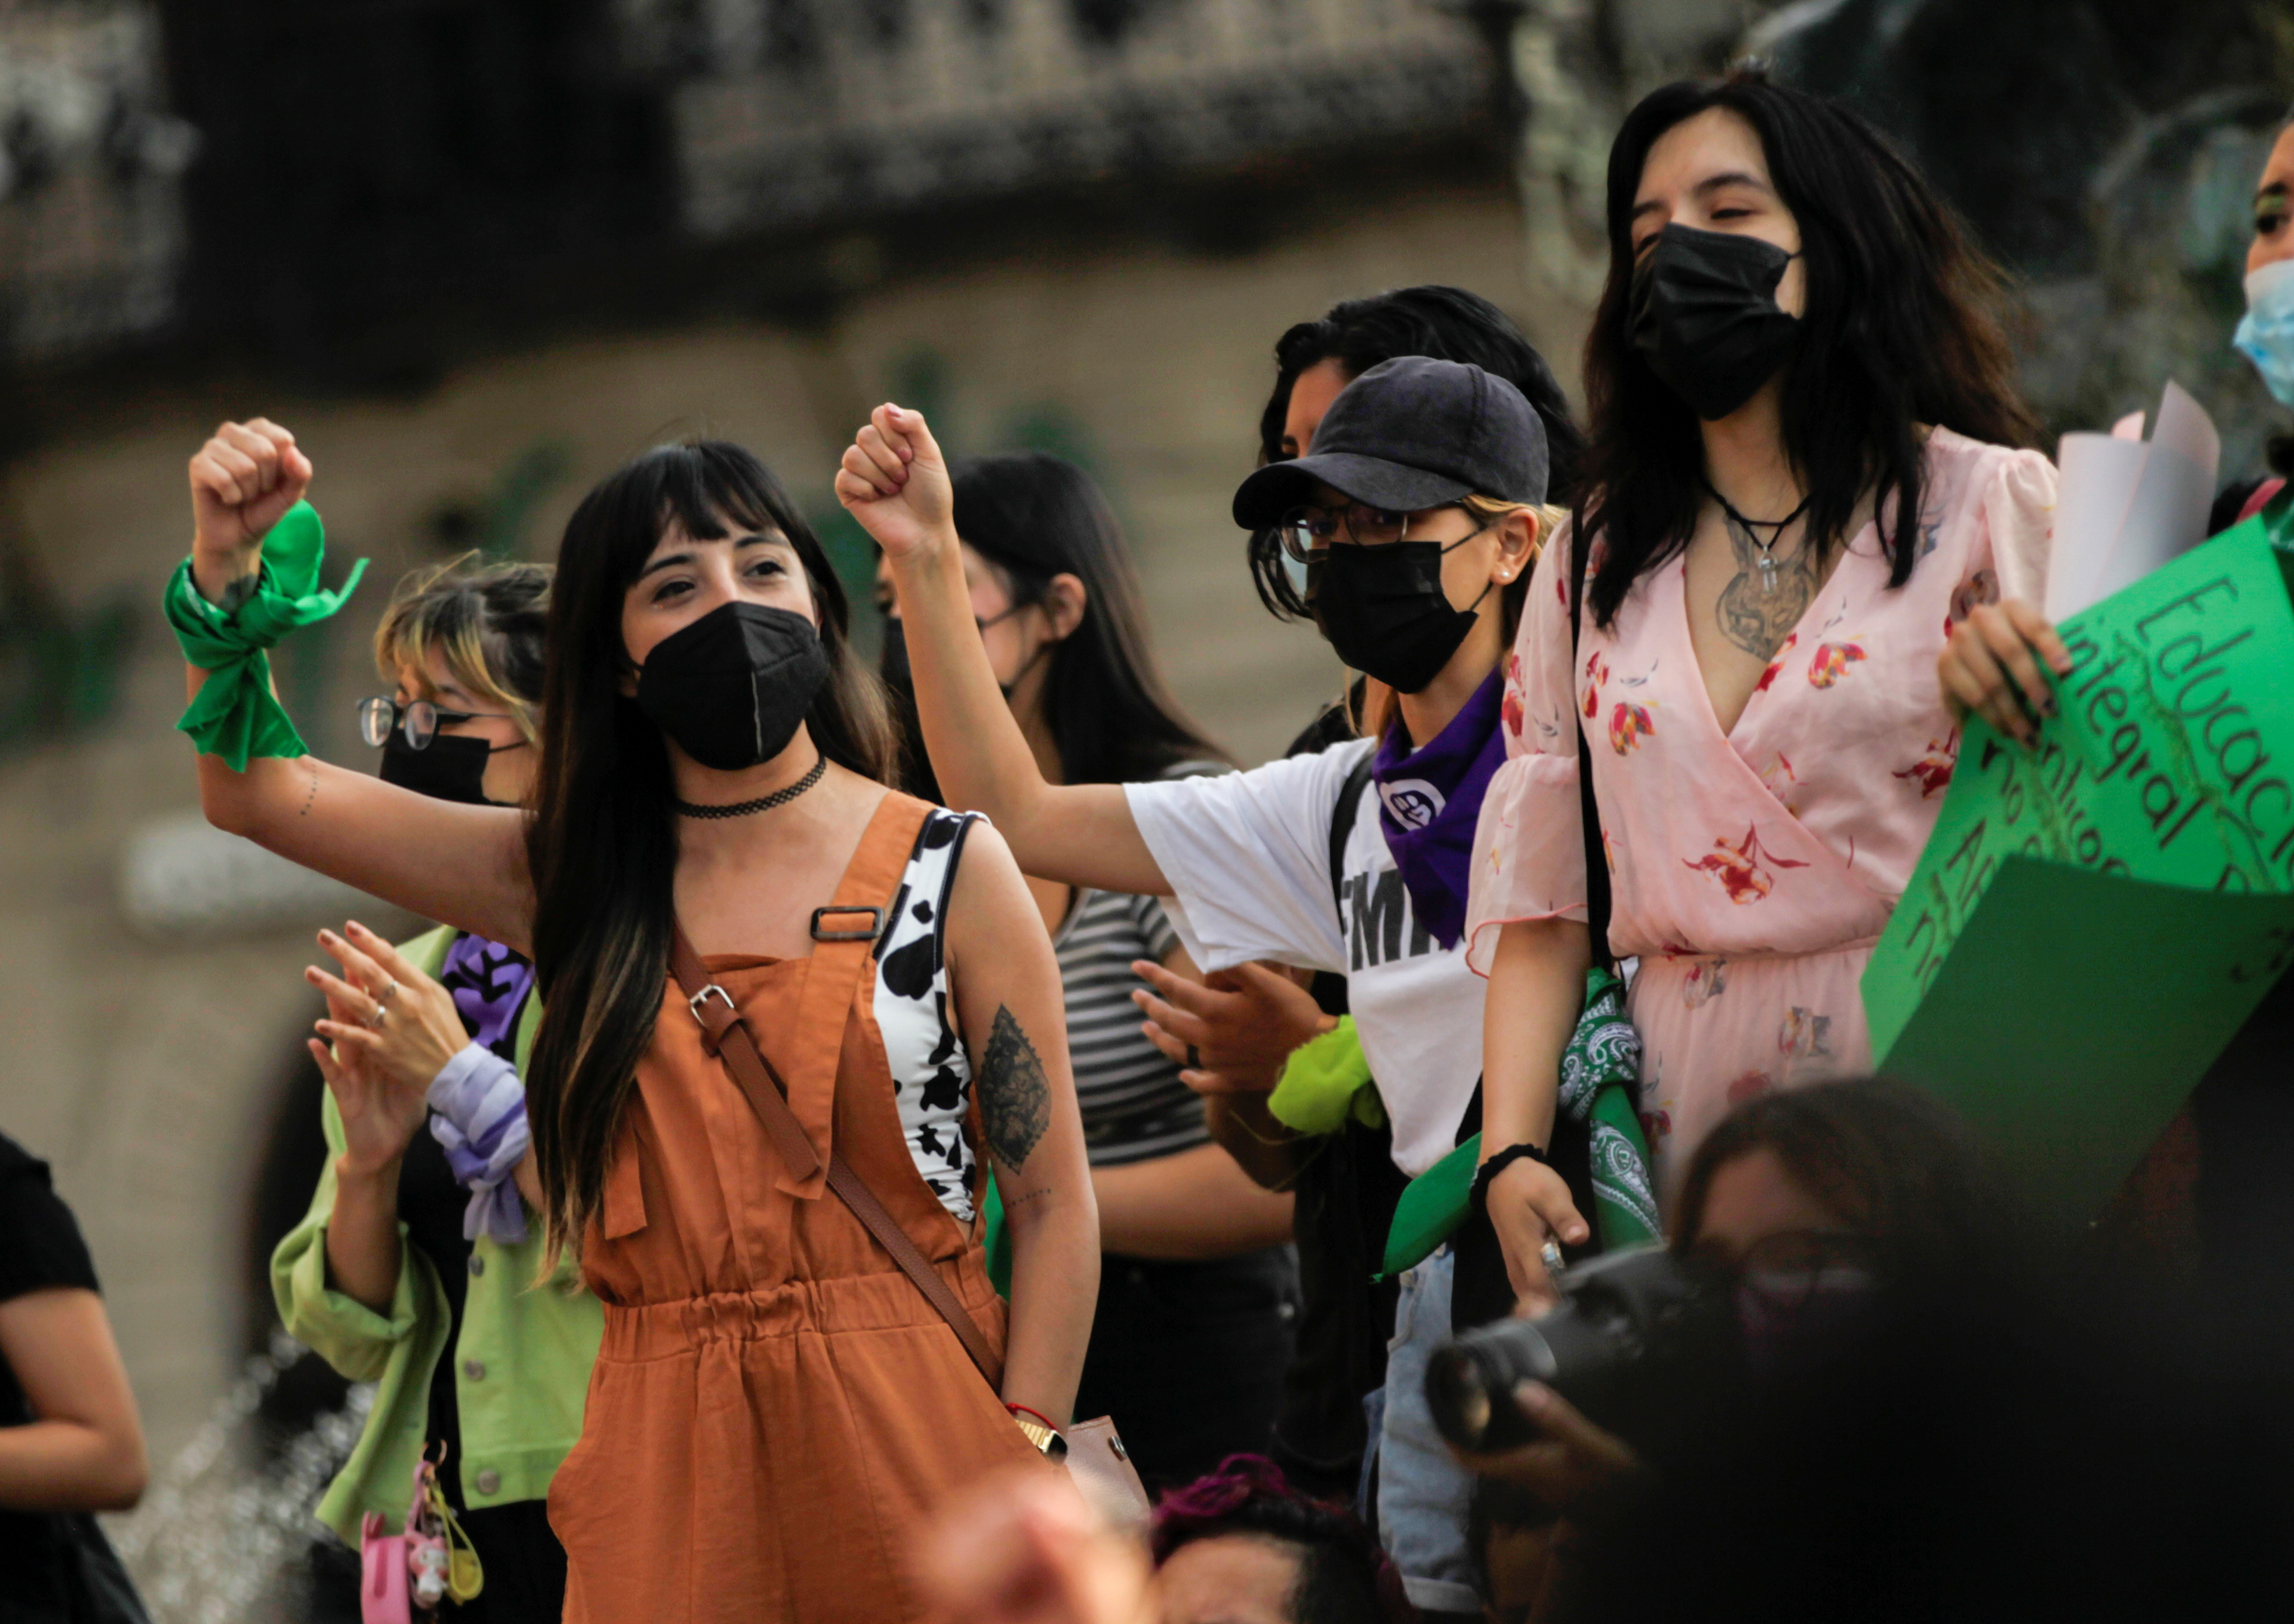 Women take part in a protest to celebrate the decision of the Supreme Court of Justice of the Nation (SCJN) that declared the criminalization of abortion as unconstitutional, in Saltillo, Mexico September 7, 2021. REUTERS/Daniel Becerril